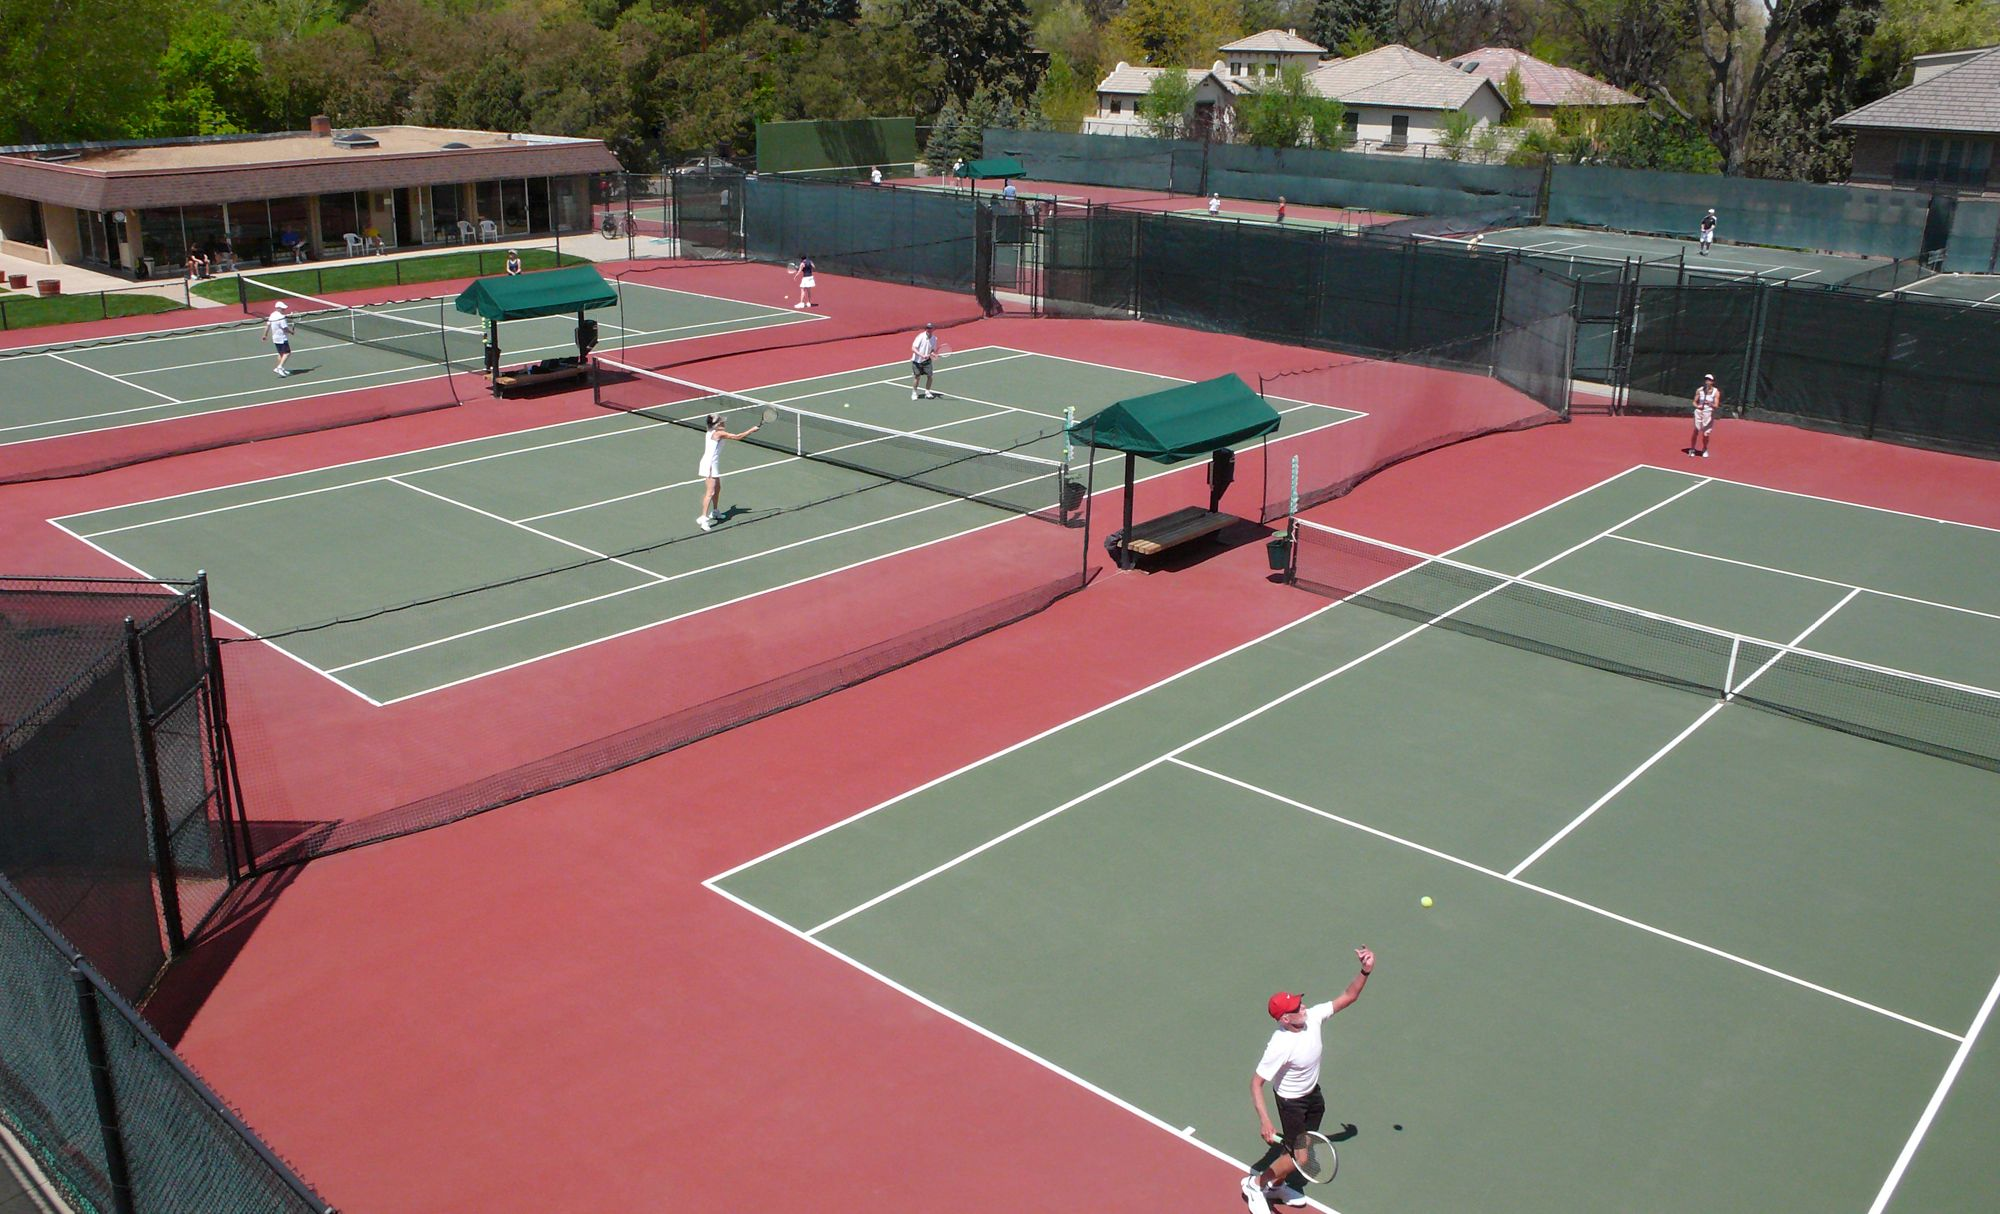 Top 5 Places for Tennis Lessons in Denver, CO